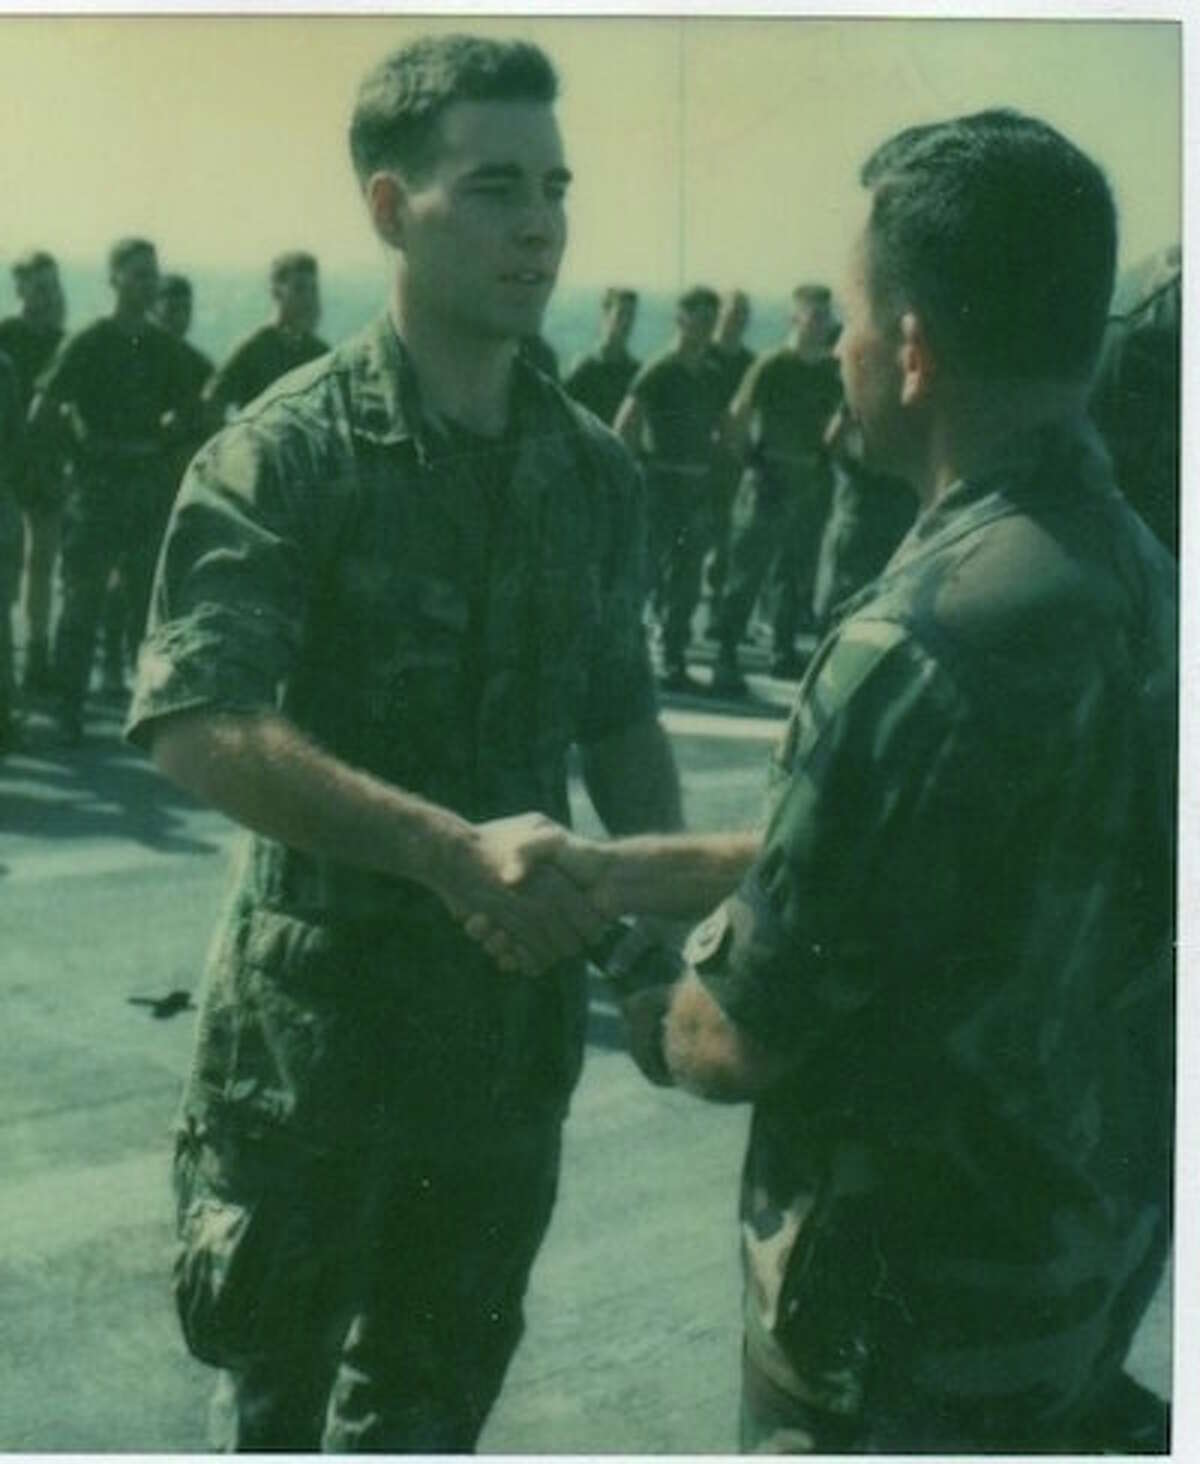 Sean McNeill served as a marine in the Middle East, Africa and Asia during the early 1980s. -Contributed photo